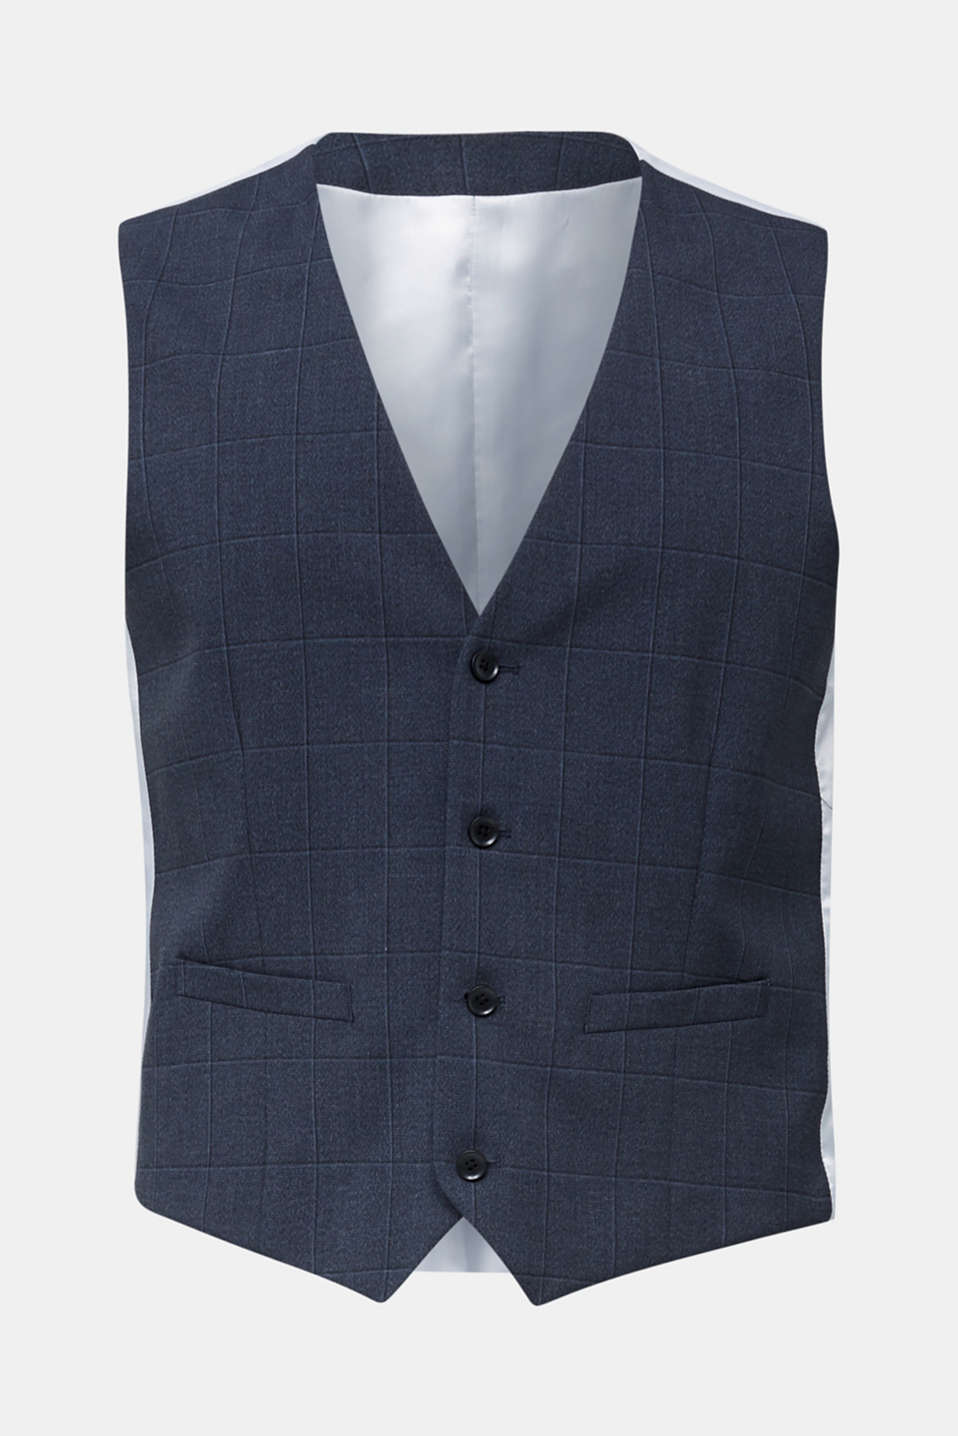 WINDOW CHECK mix + match: waistcoat, DARK BLUE 3, detail image number 7